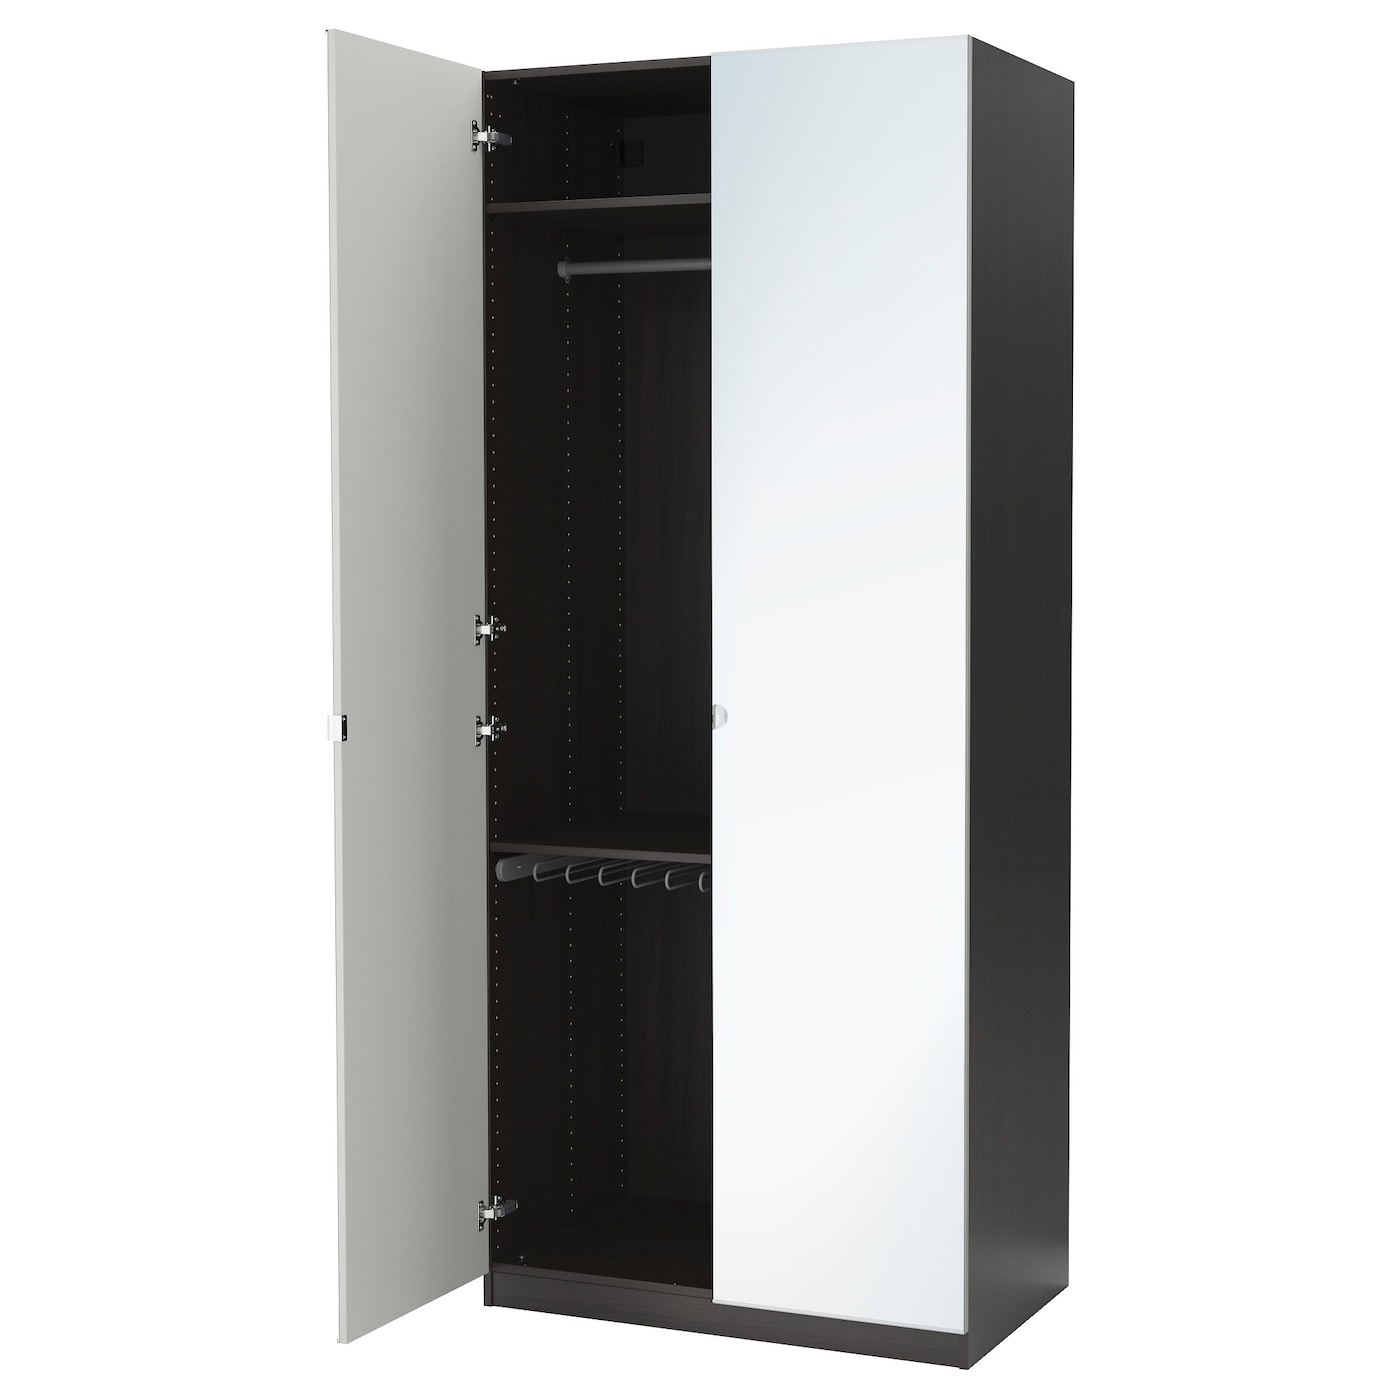 #5E6D6D PAX Wardrobe Black Brown/vikedal Mirror Glass 100x60x236  945 armoire porte coulissante pin 2000x2000 px @ aertt.com